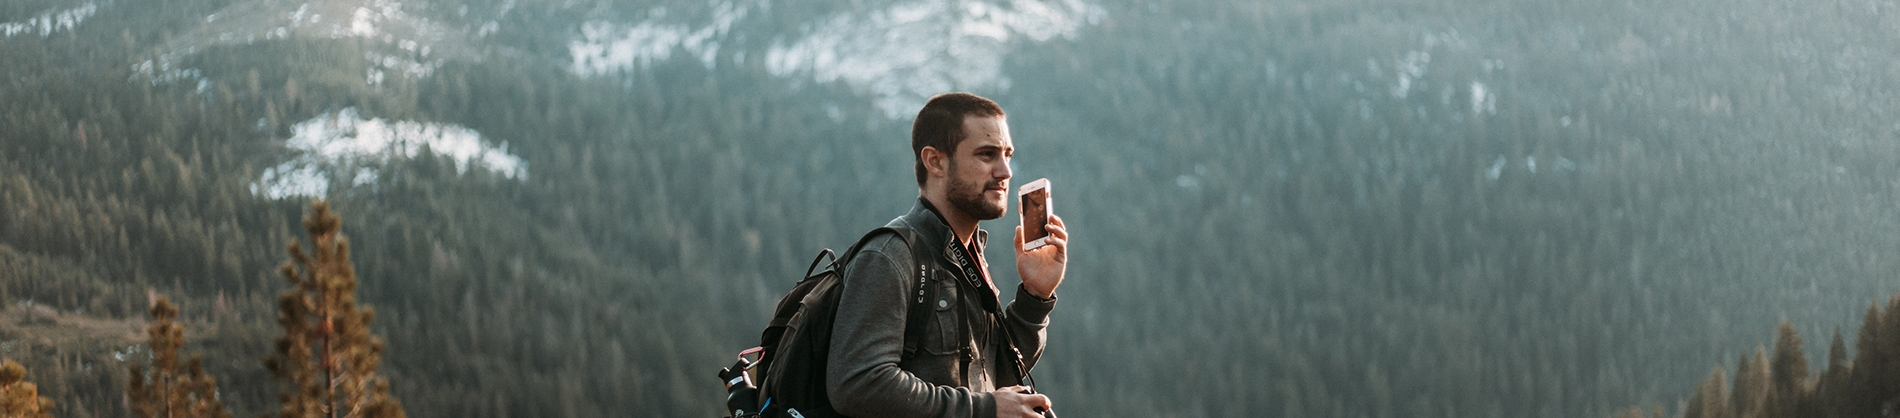 A guy high up on a mountain speaking on the phone